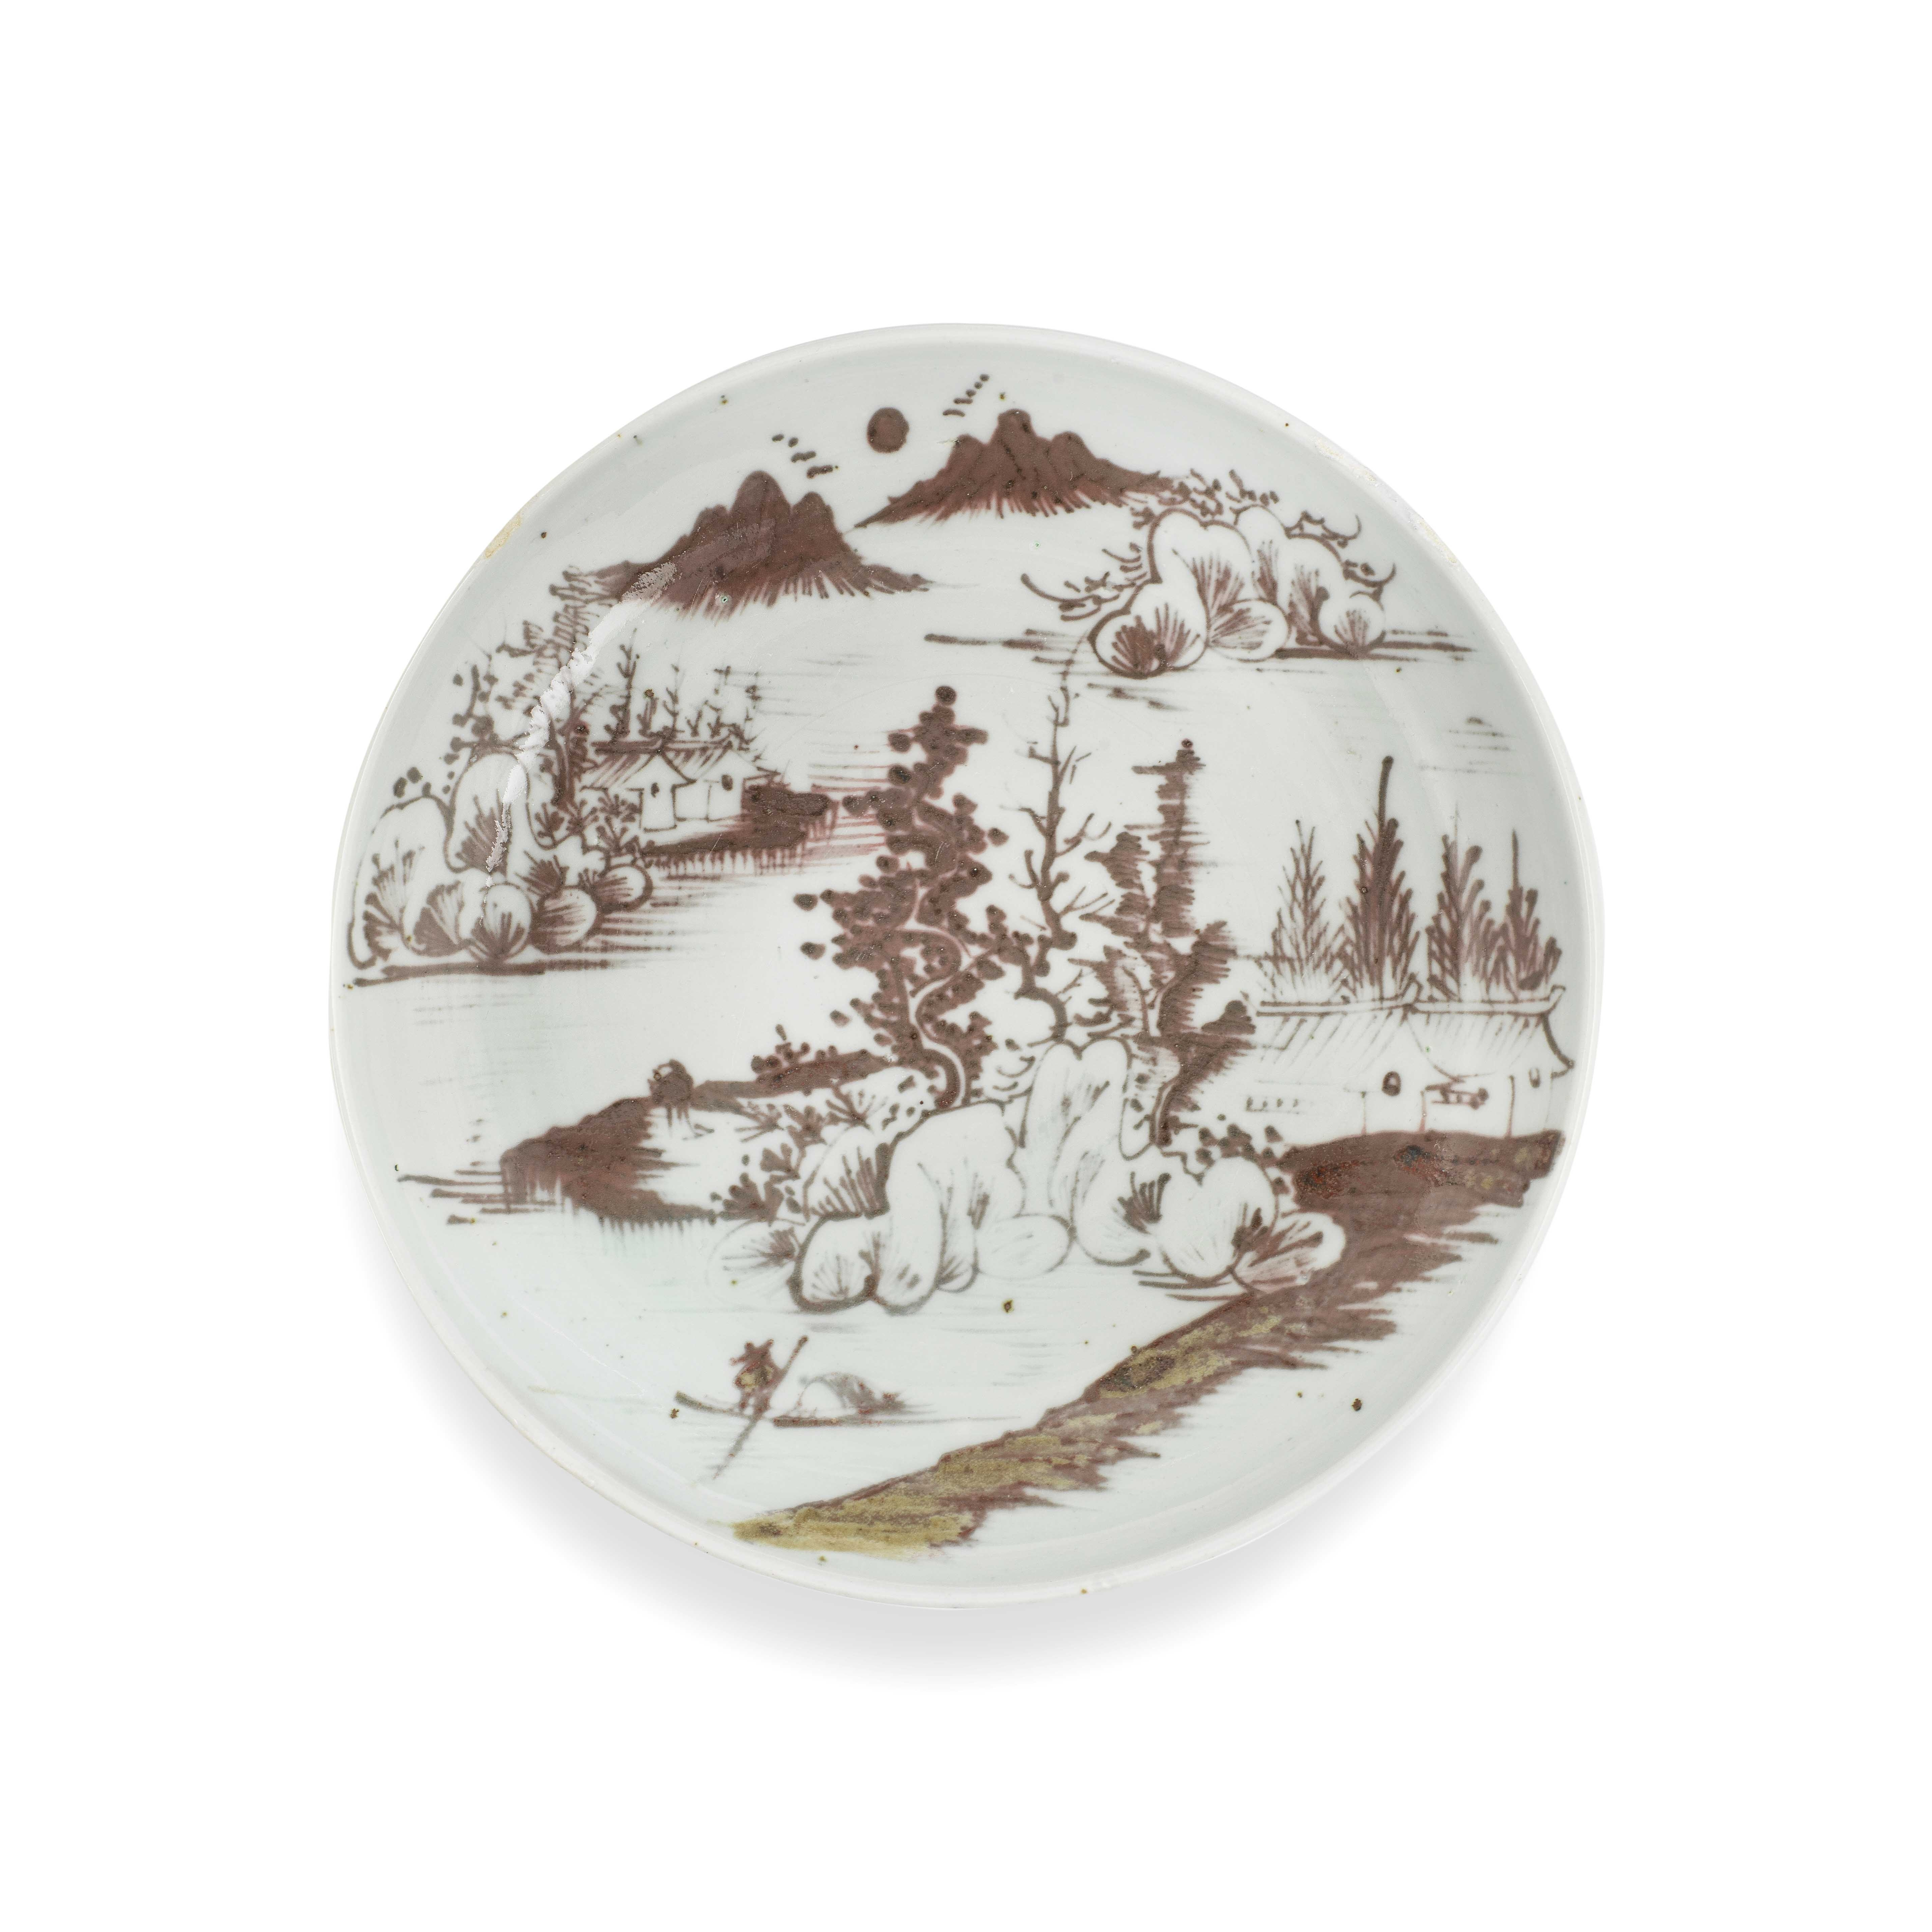 A COPPER-RED 'LANDSCAPE' DISH Qing Dynasty